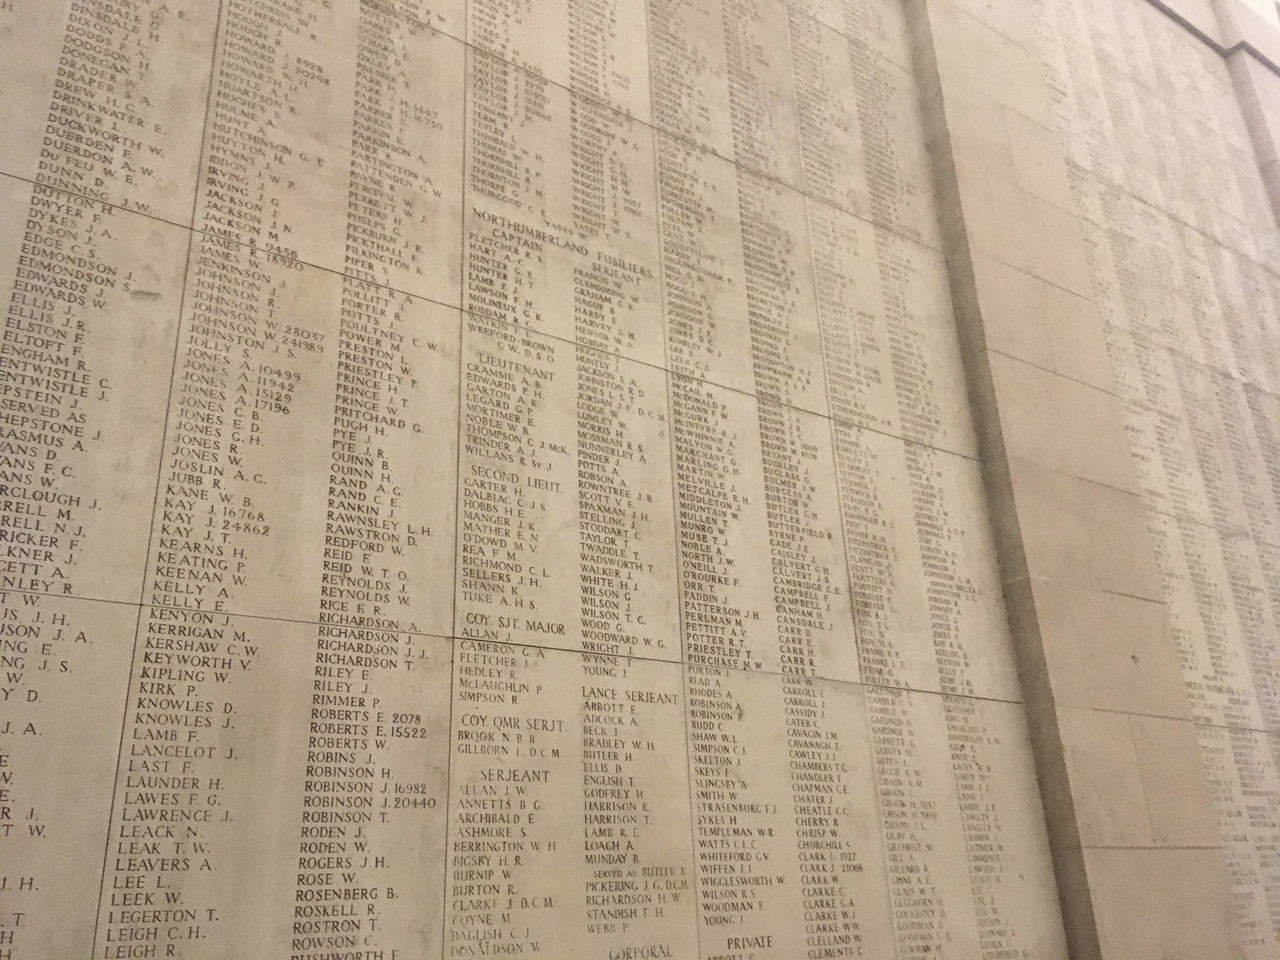 Names on the walls of the Menin Gate in Ypres/Ieper, Belgium